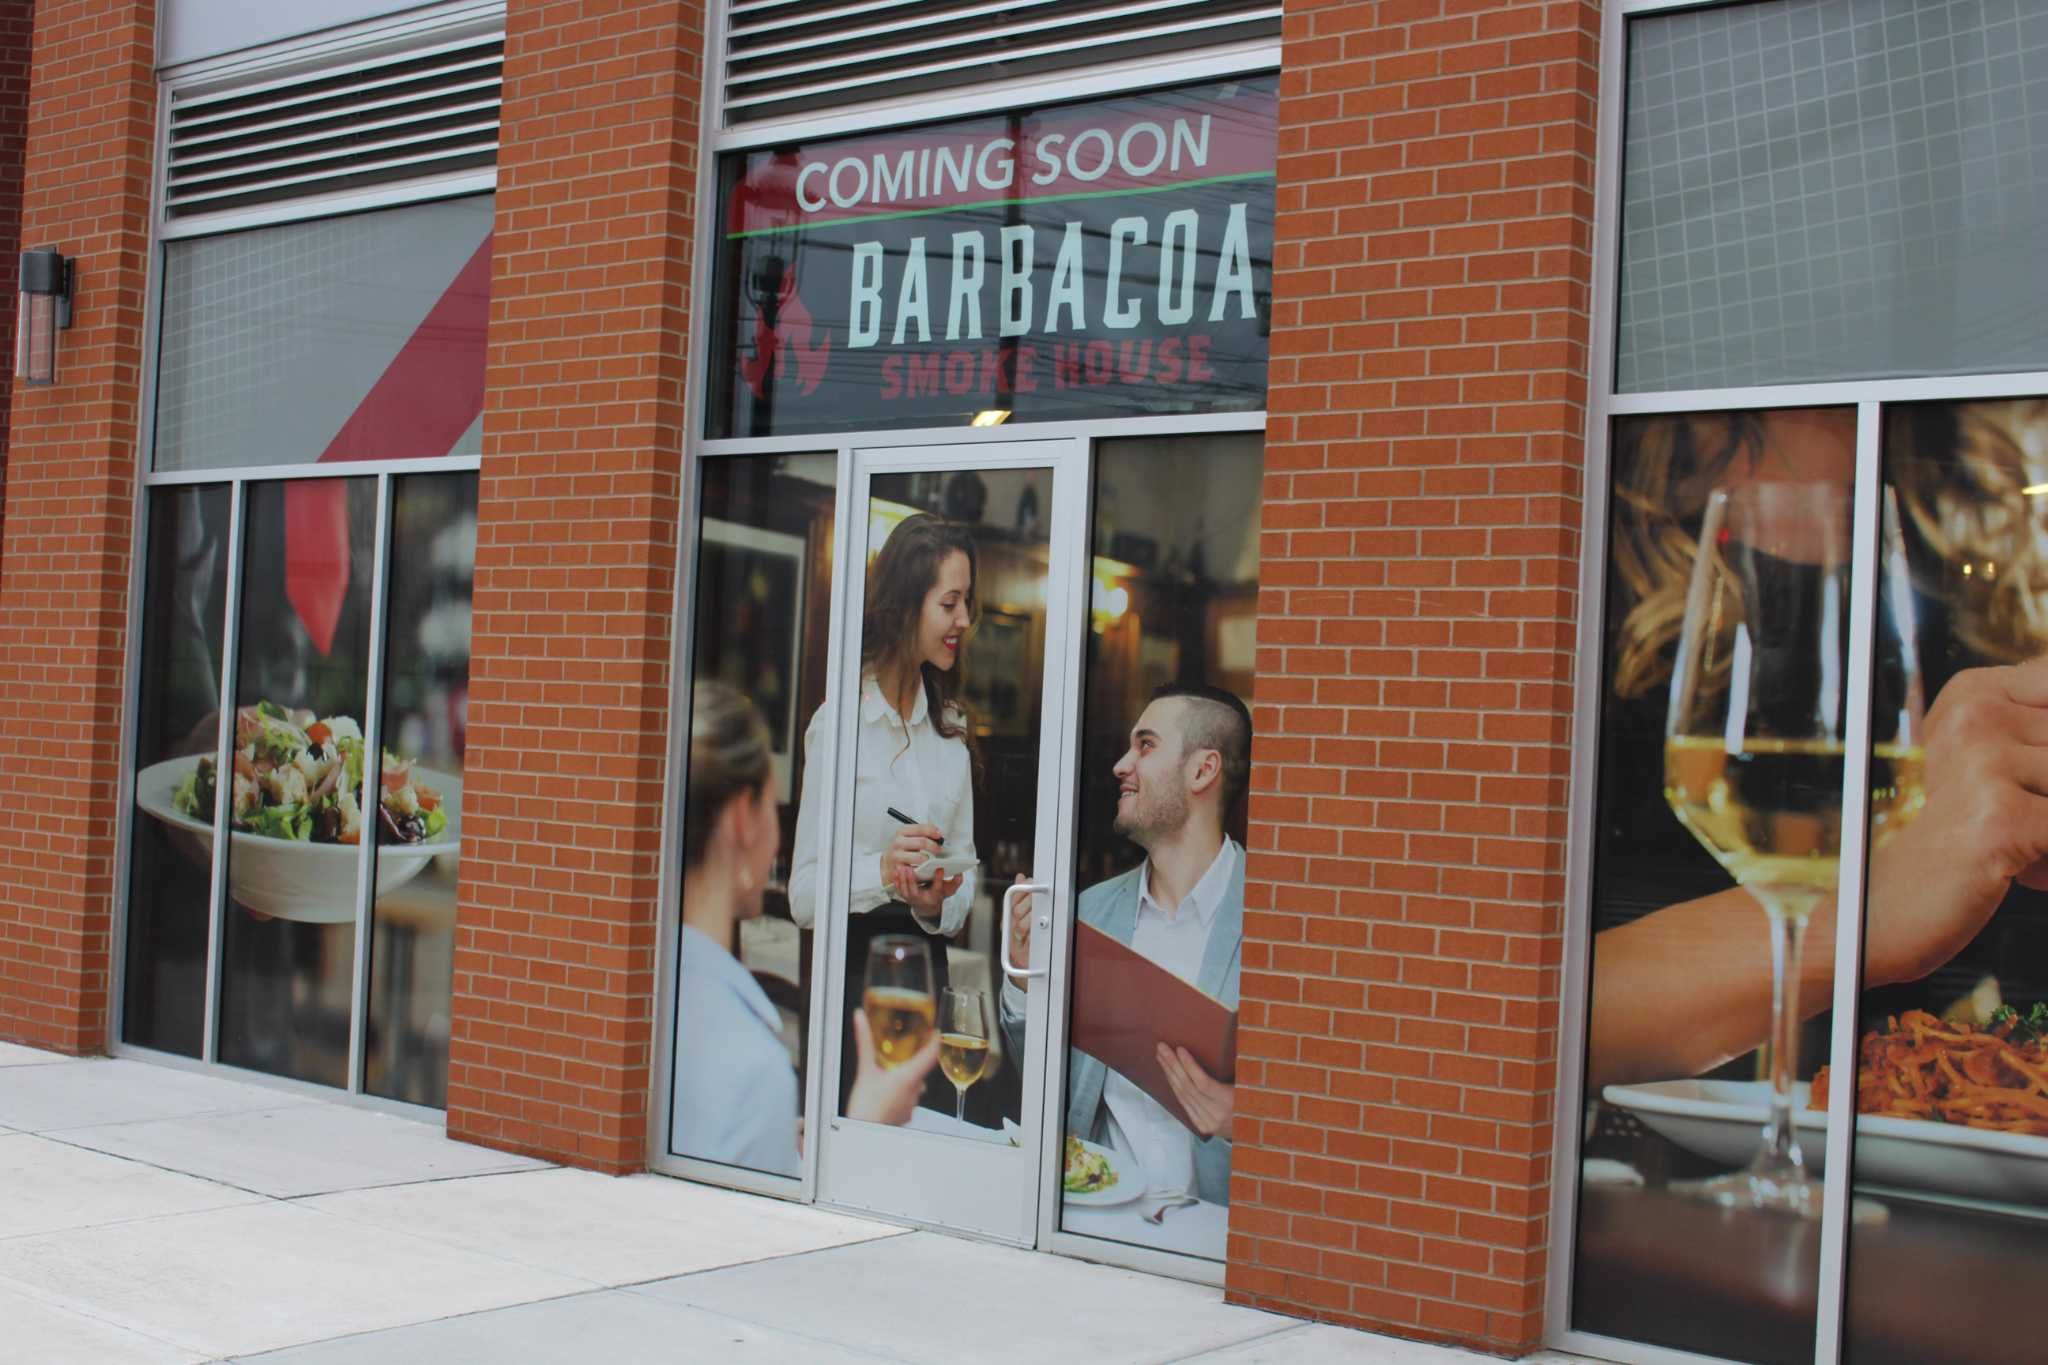 Fairfield barbecue restaurant will look to remove wait times ...